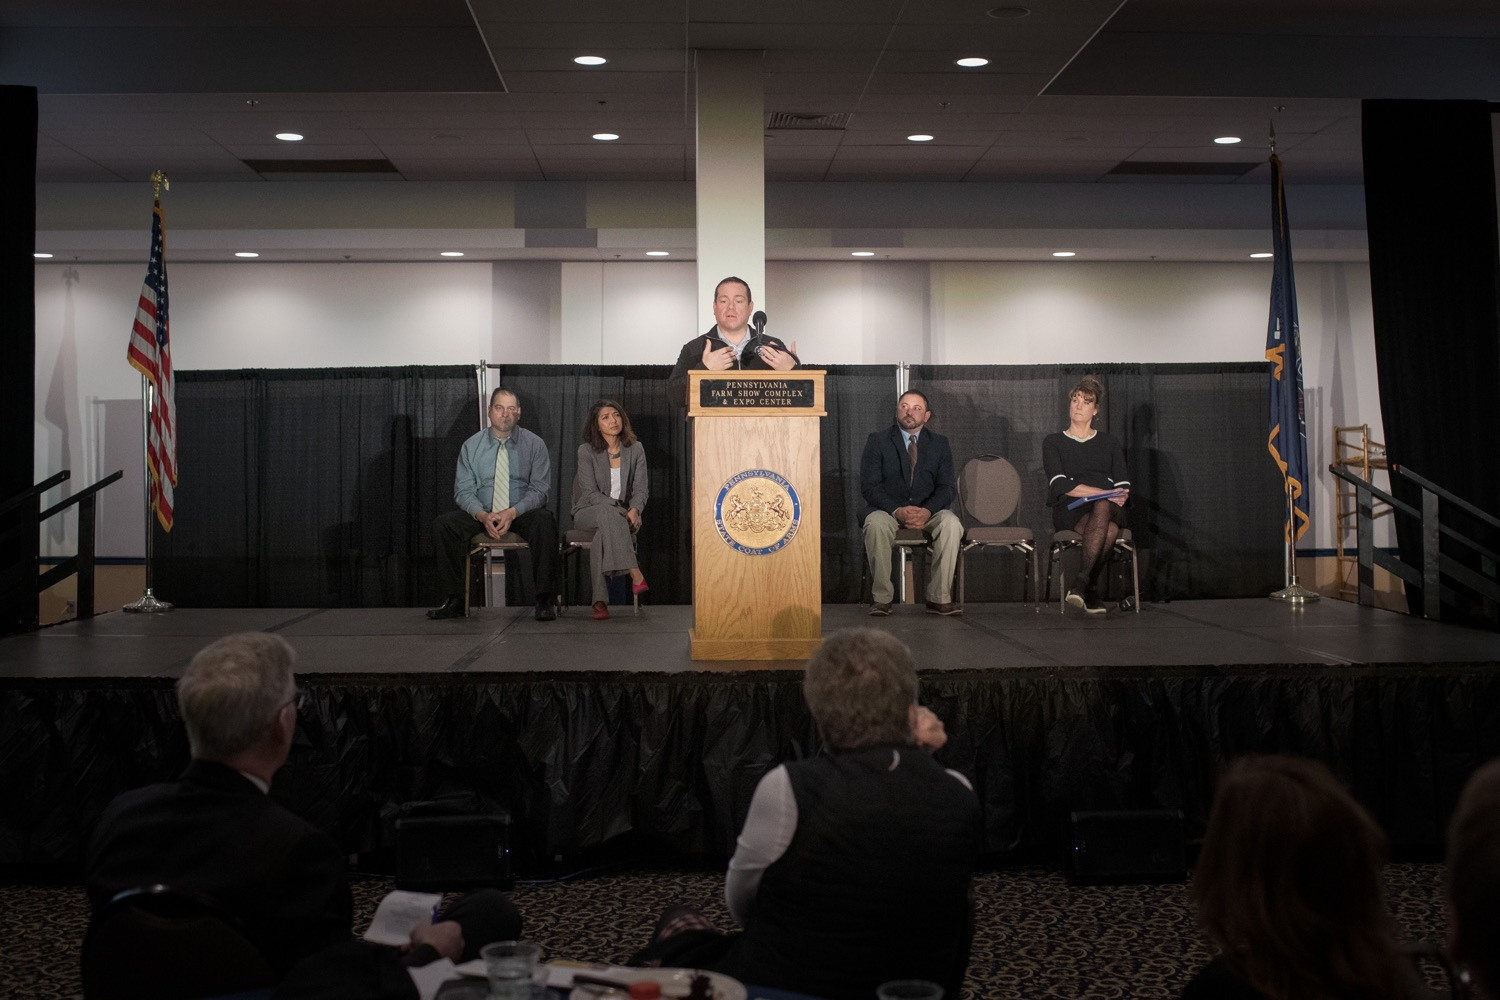 "<a href=""https://filesource.wostreaming.net/commonwealthofpa/photo/17650_agric_public_officials_day_dz_020.jpg"" target=""_blank"">⇣ Download Photo<br></a>Inspiring Innovator Jason Frye of Pleasant Lane Farms speaks at Public Officials Day.  Addressing nearly 800 public officials at the Pennsylvania Farm Show today, Agriculture Secretary Russell Redding announced the opening of the last grant program made possible by the 2019 PA Farm Bill. The $1 million Farm Vitality Grant Program aims to enhance the long-term health and vitality of Pennsylvanias family farms. Harrisburg, PA  January 08, 2020"